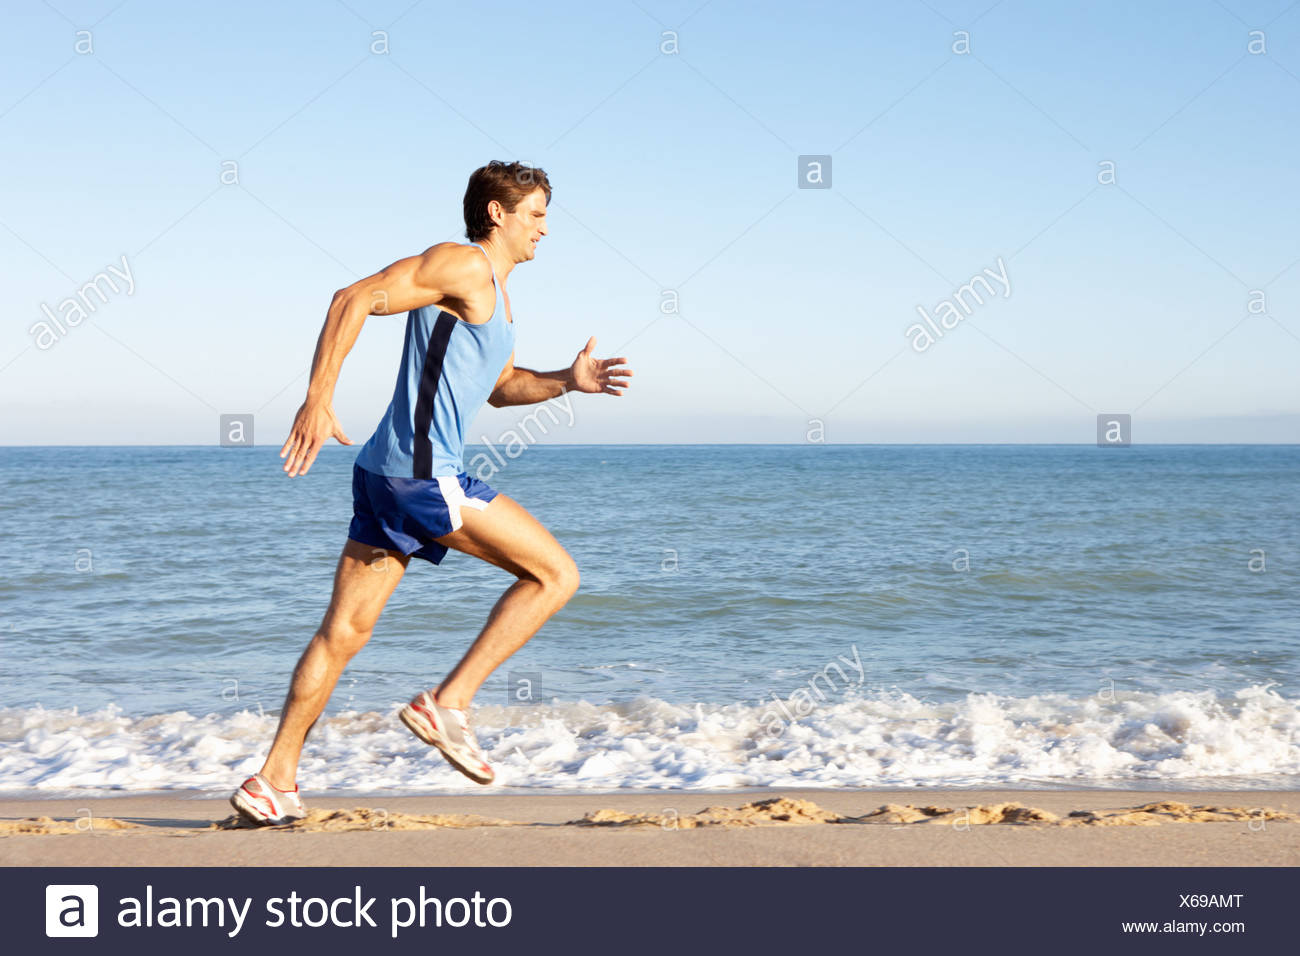 Young Man Fitness Clothing Running Along Beach - Stock Image